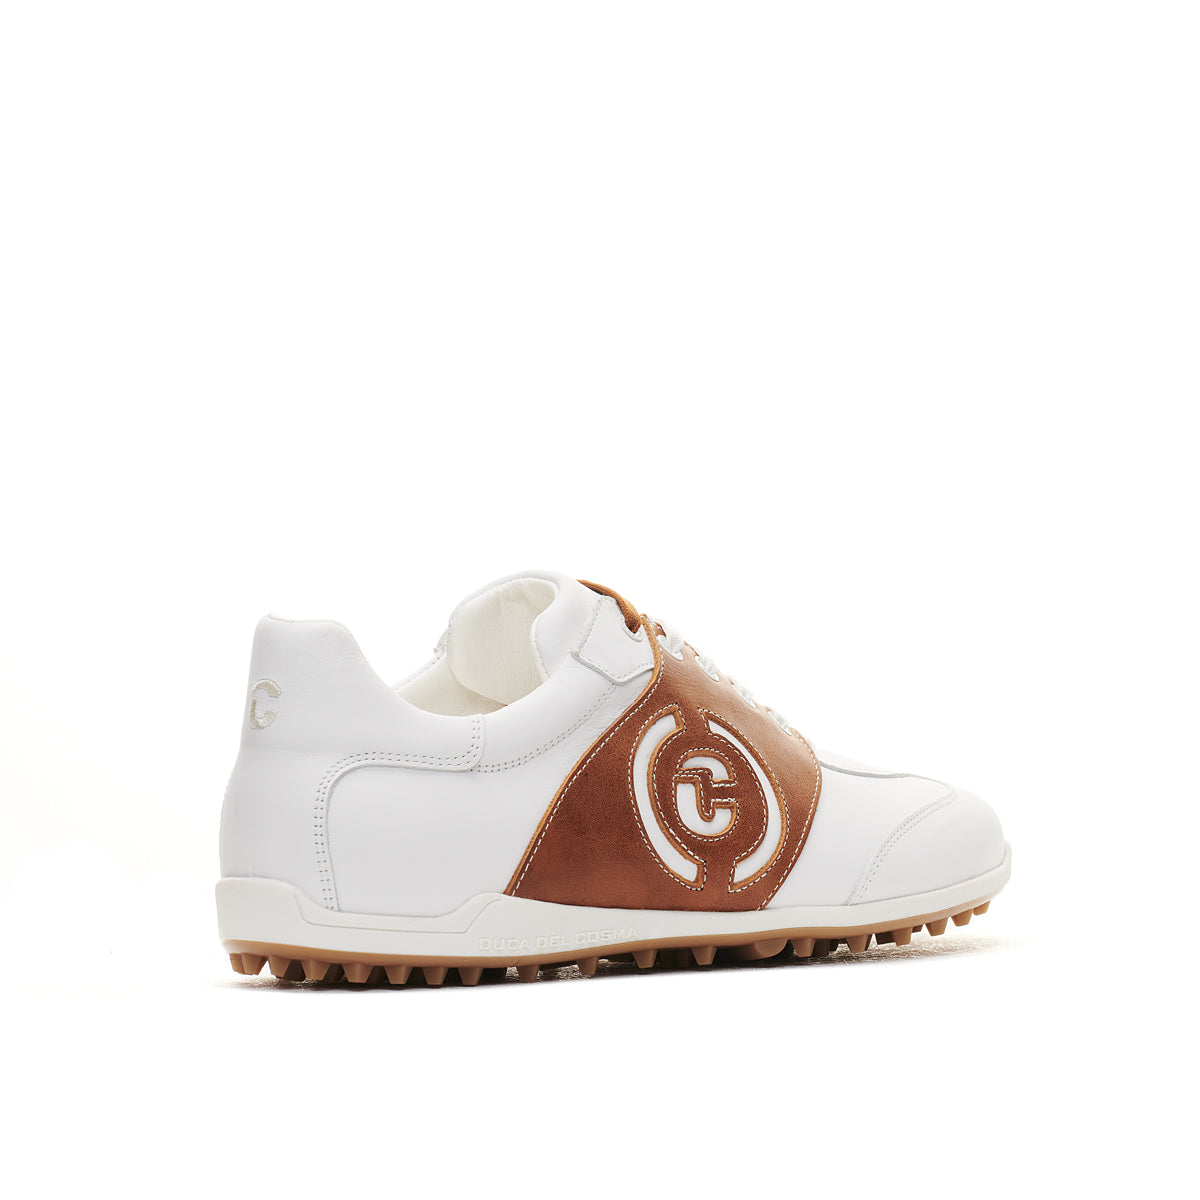 Men's Valderama White Golf Shoe